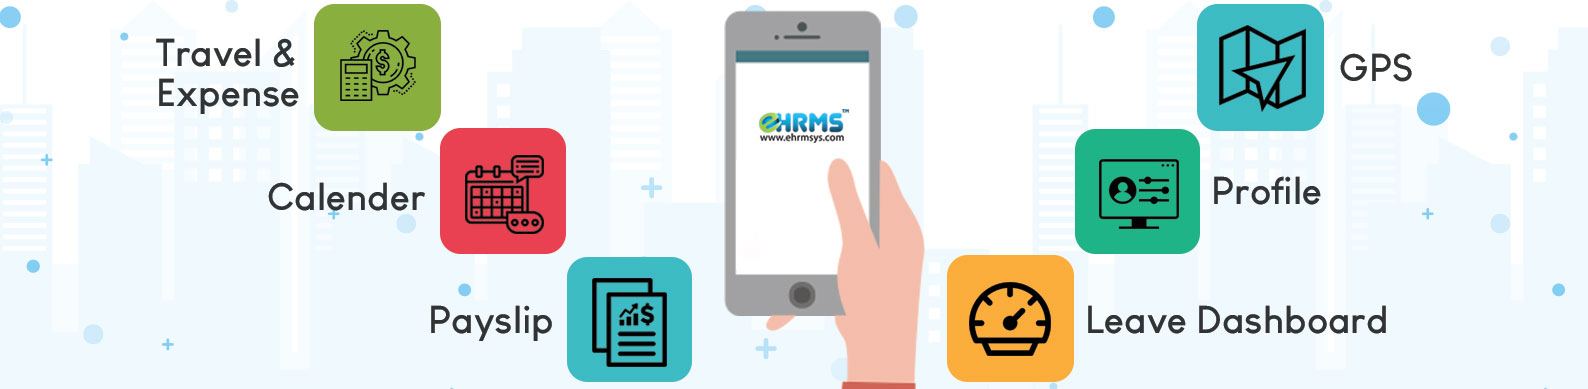 mobile-app-ehrms